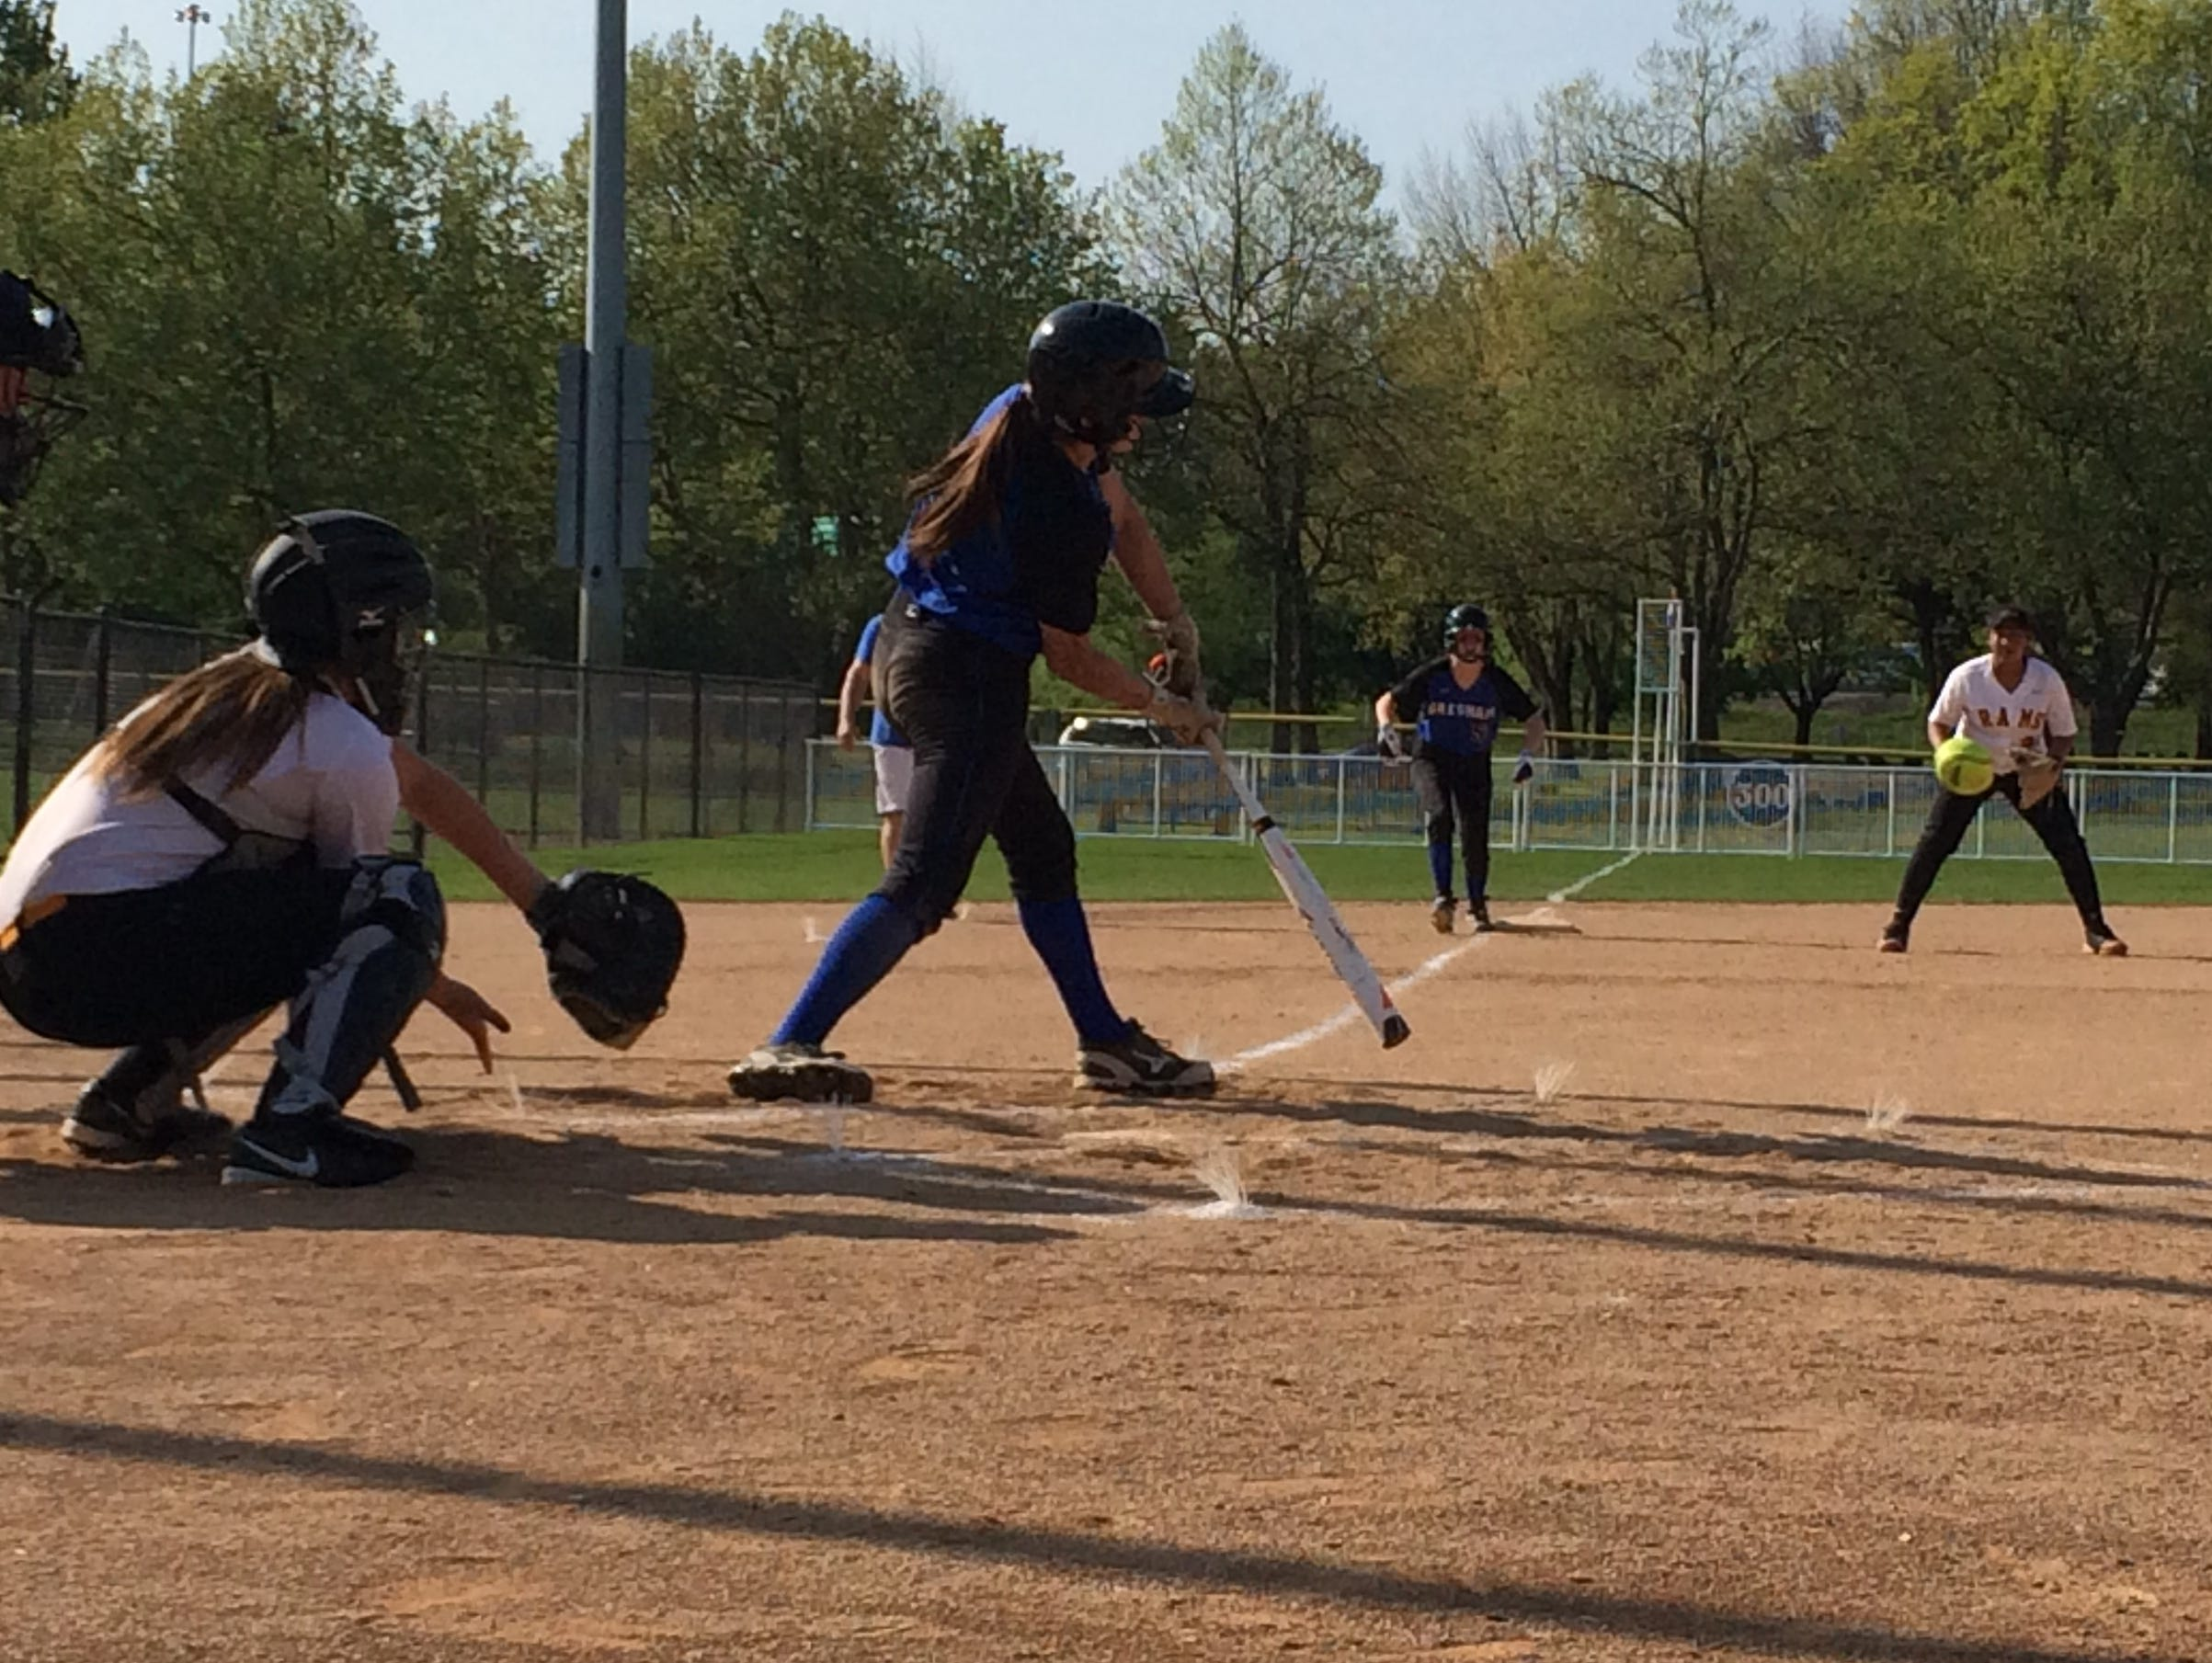 Gresham's Emily Rose laces a two-run double down the right field line against Central Catholic.